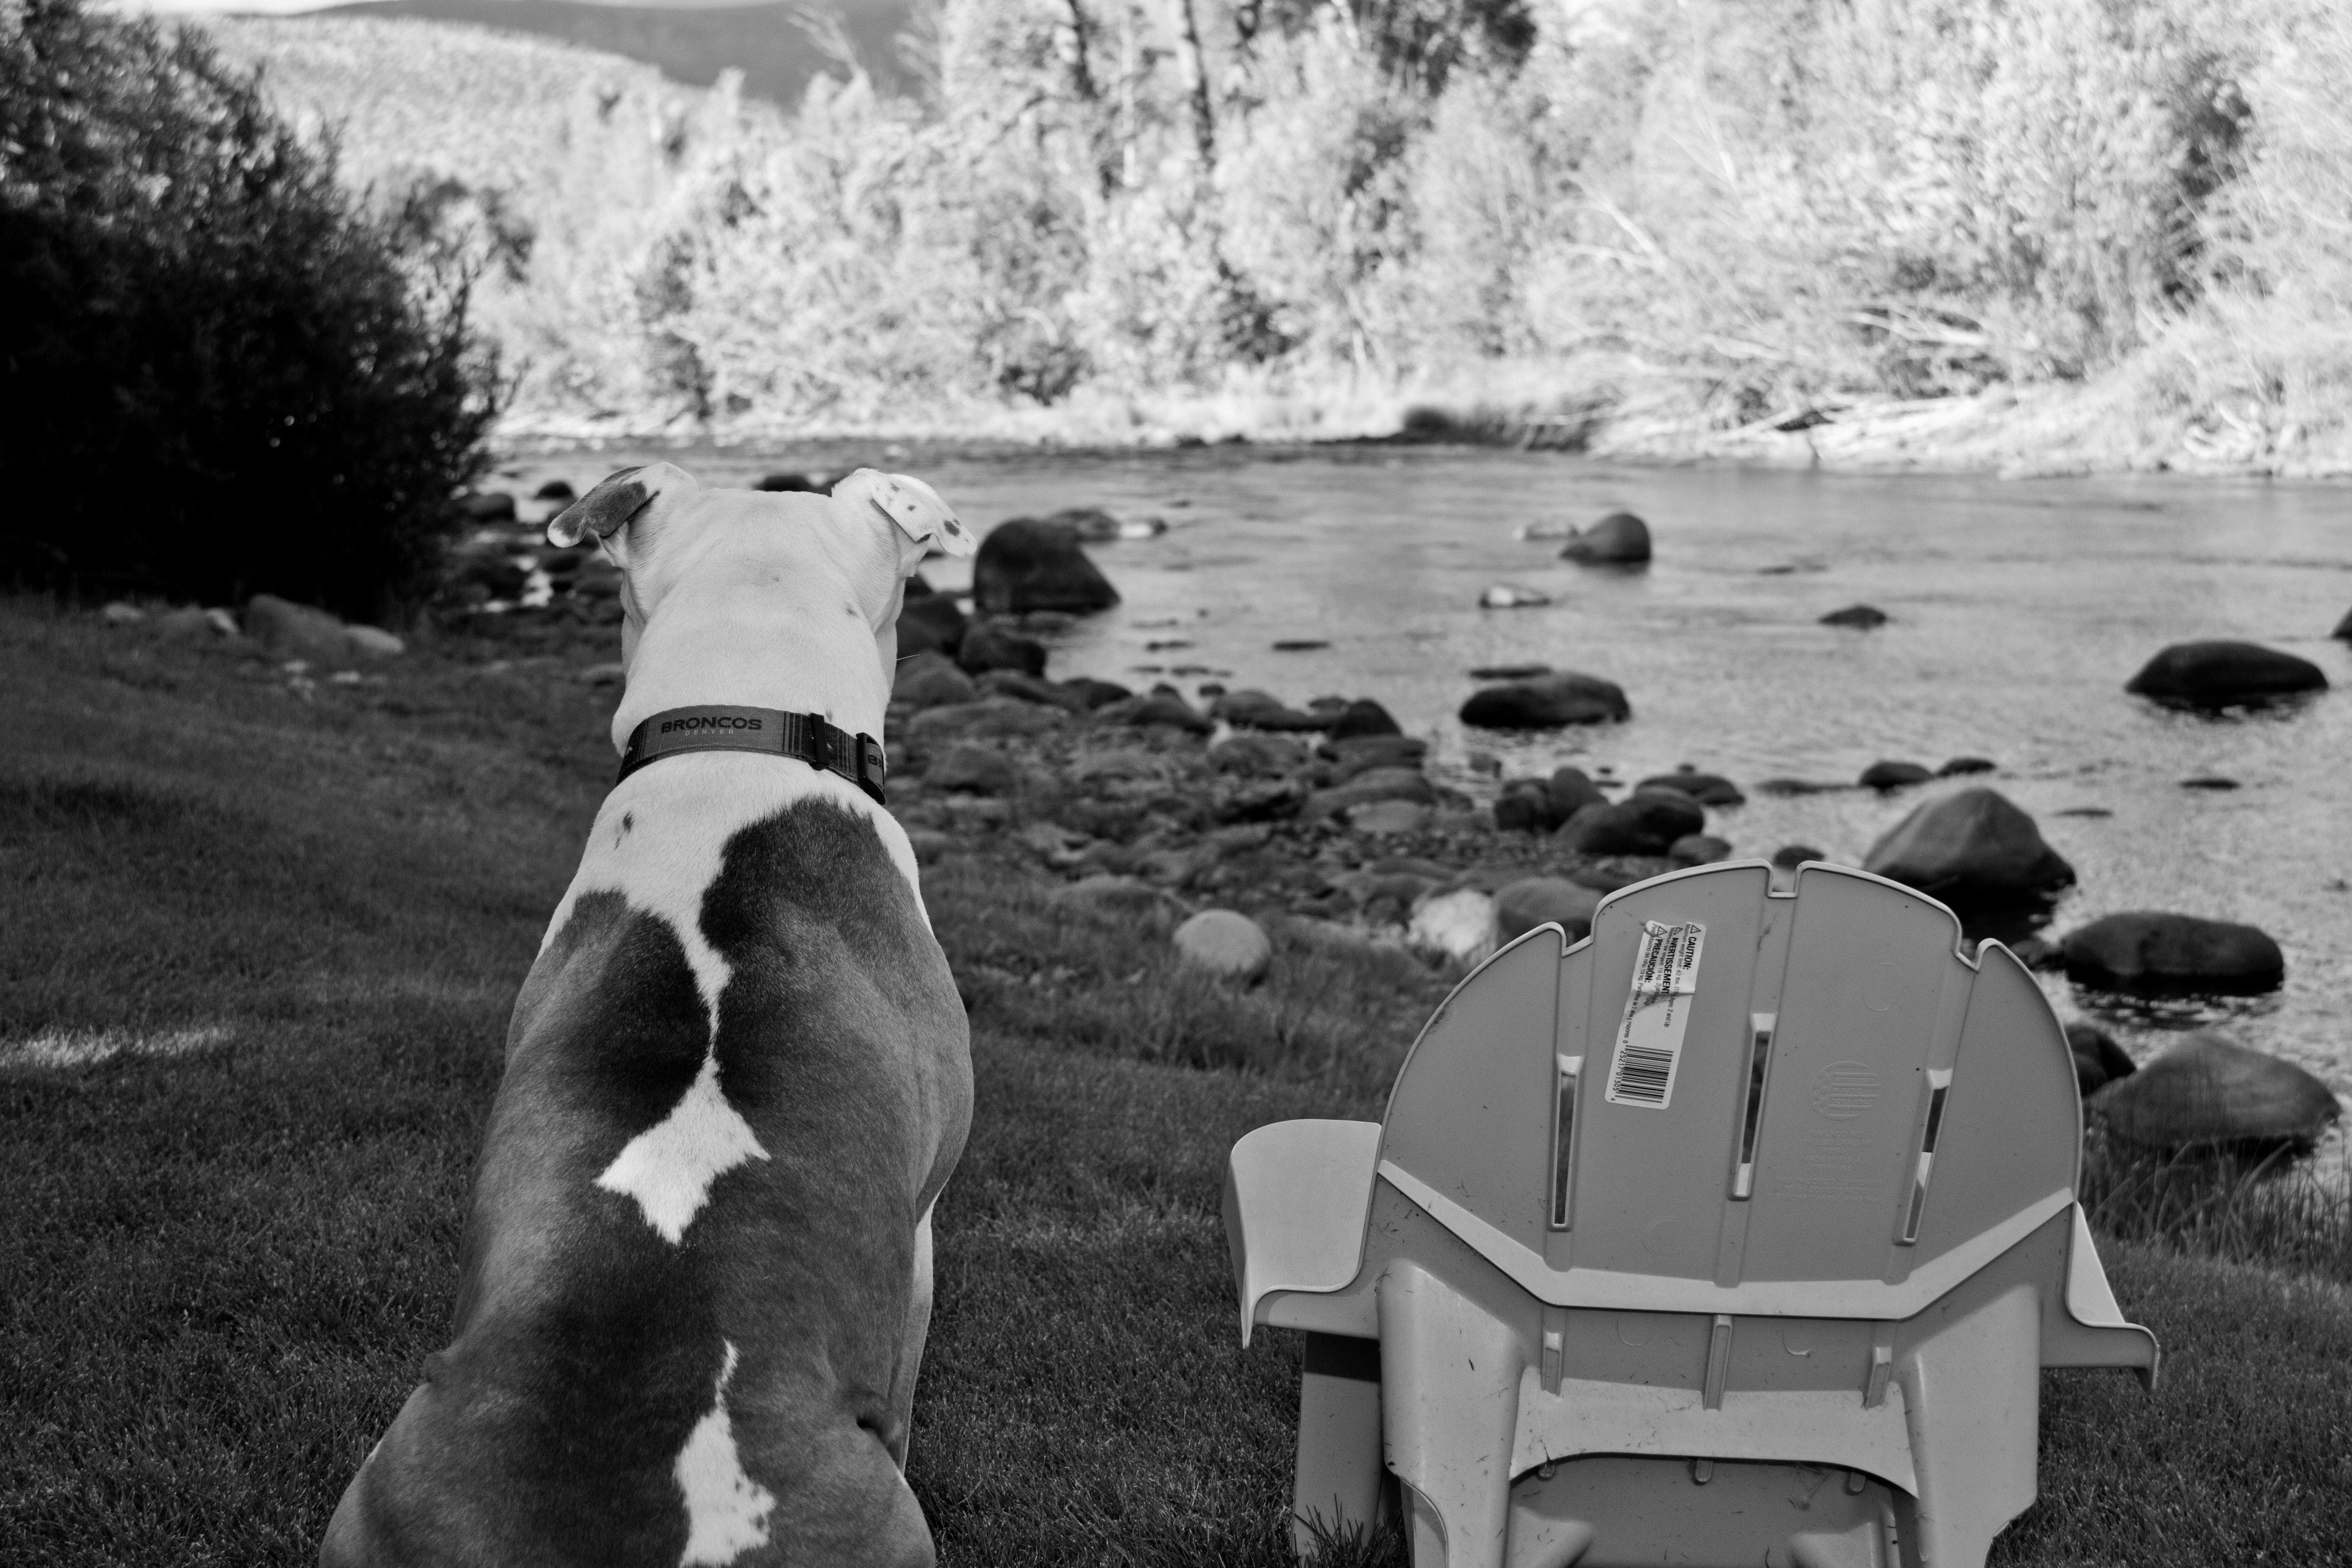 a dog stands stoicly next to an empty chair, overlooking the rocky riverbank ahead